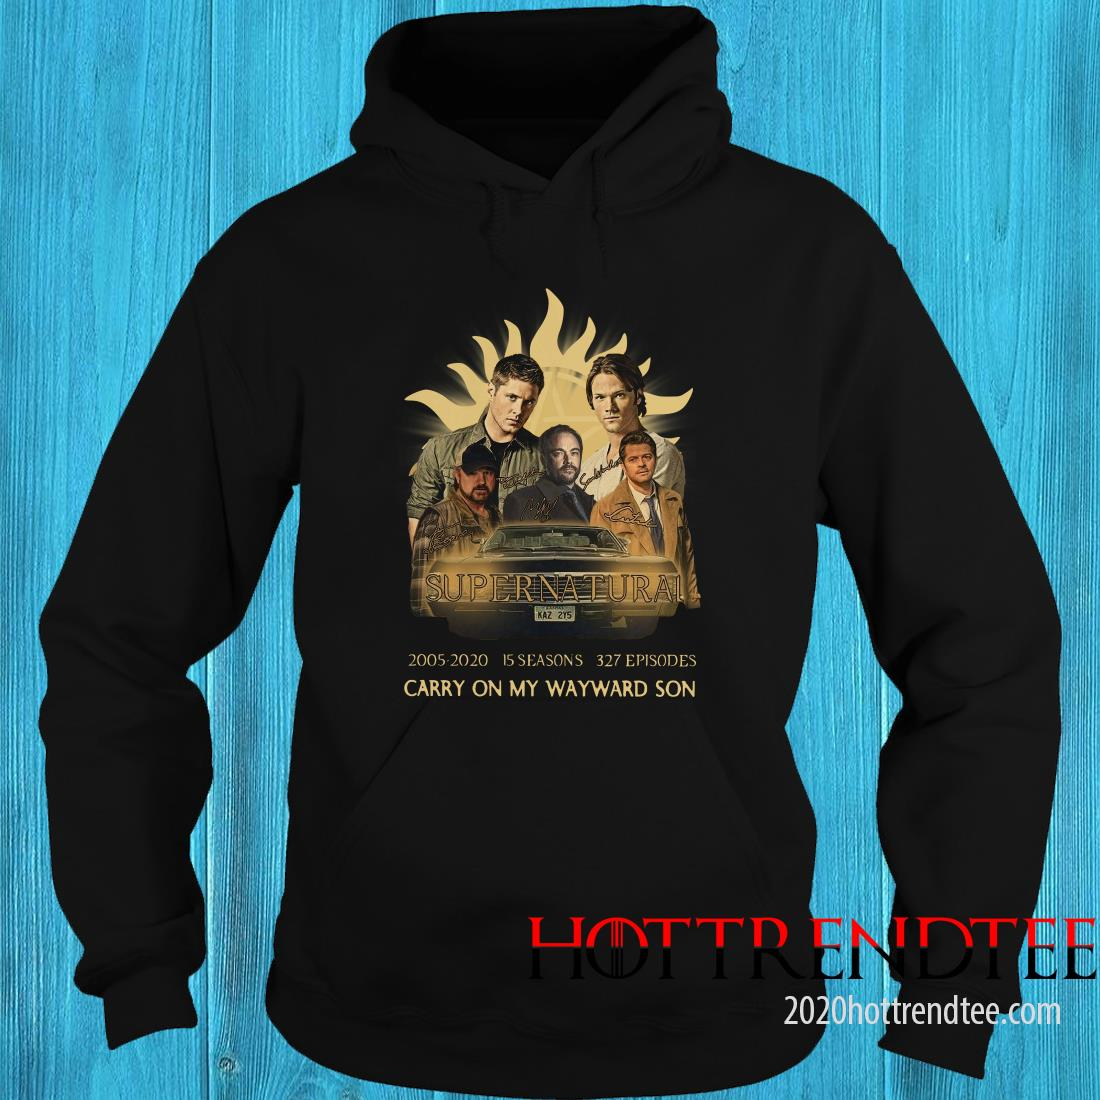 Supernatural 2005-2020 15 Seasons 327 Episodes Carry On My Wayward Son Hoodie